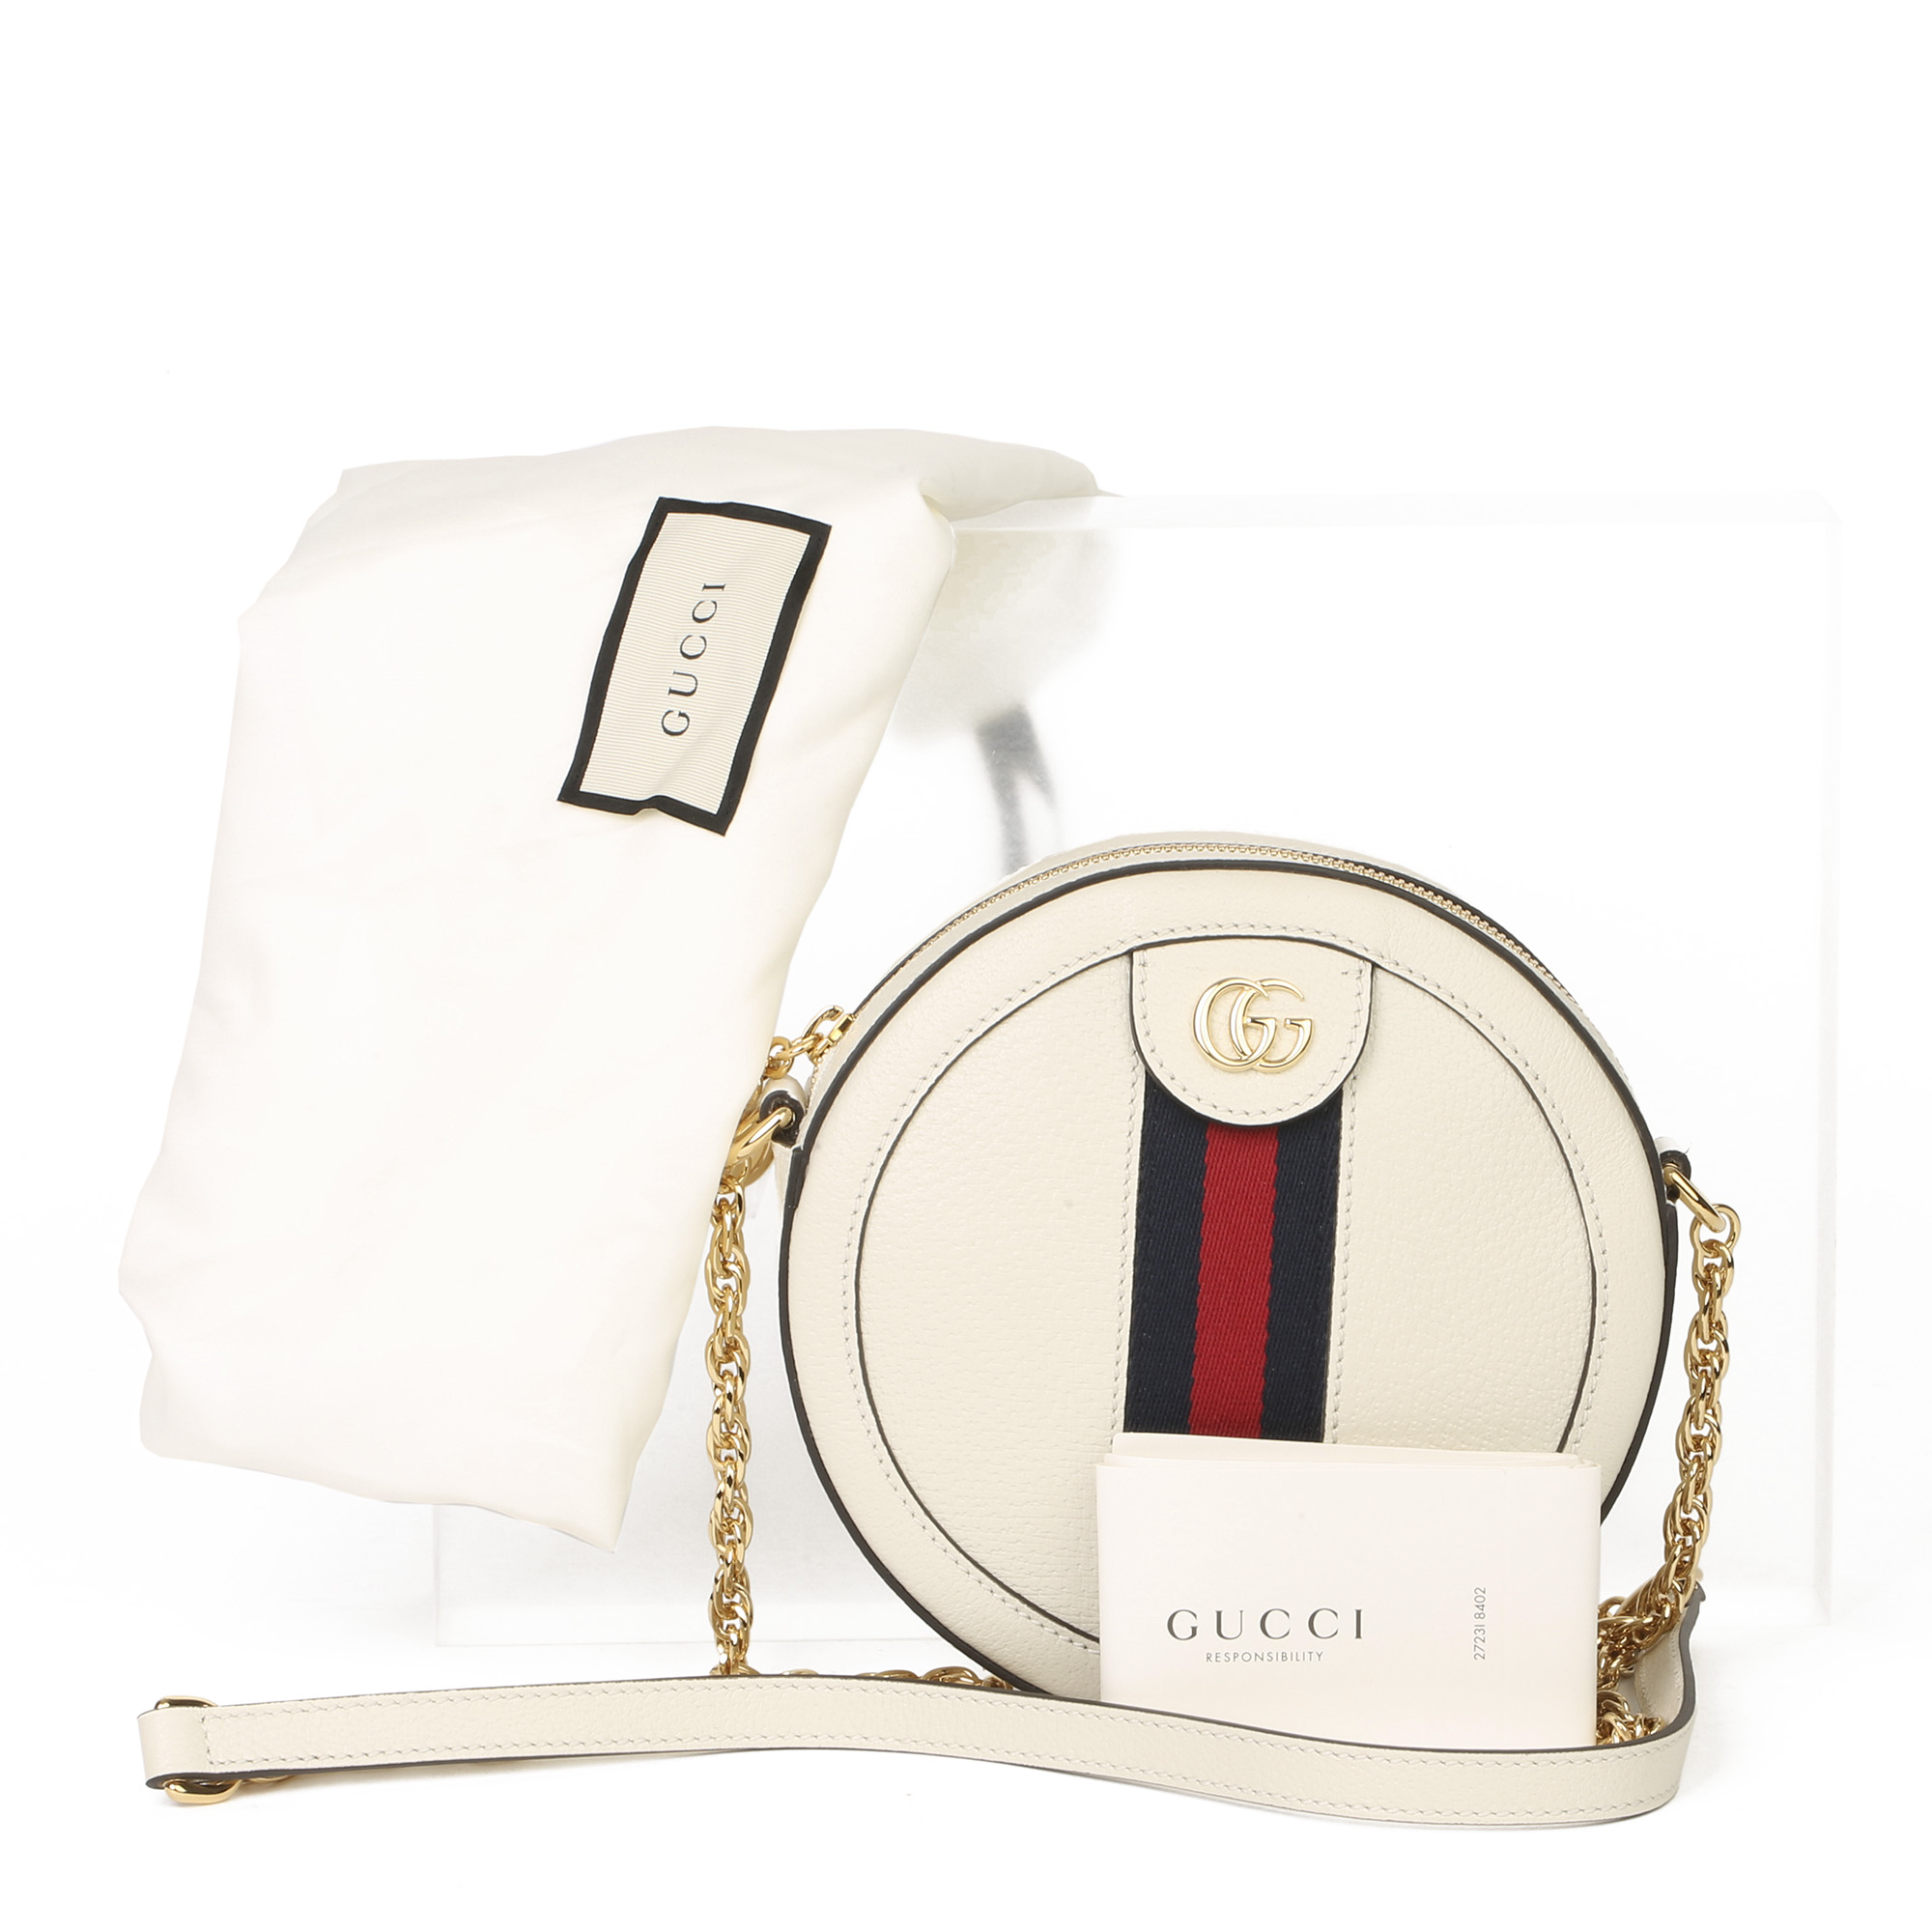 Gucci White Pigskin Leather Web Mini Round Orphidia Shoulder Bag - Image 2 of 11